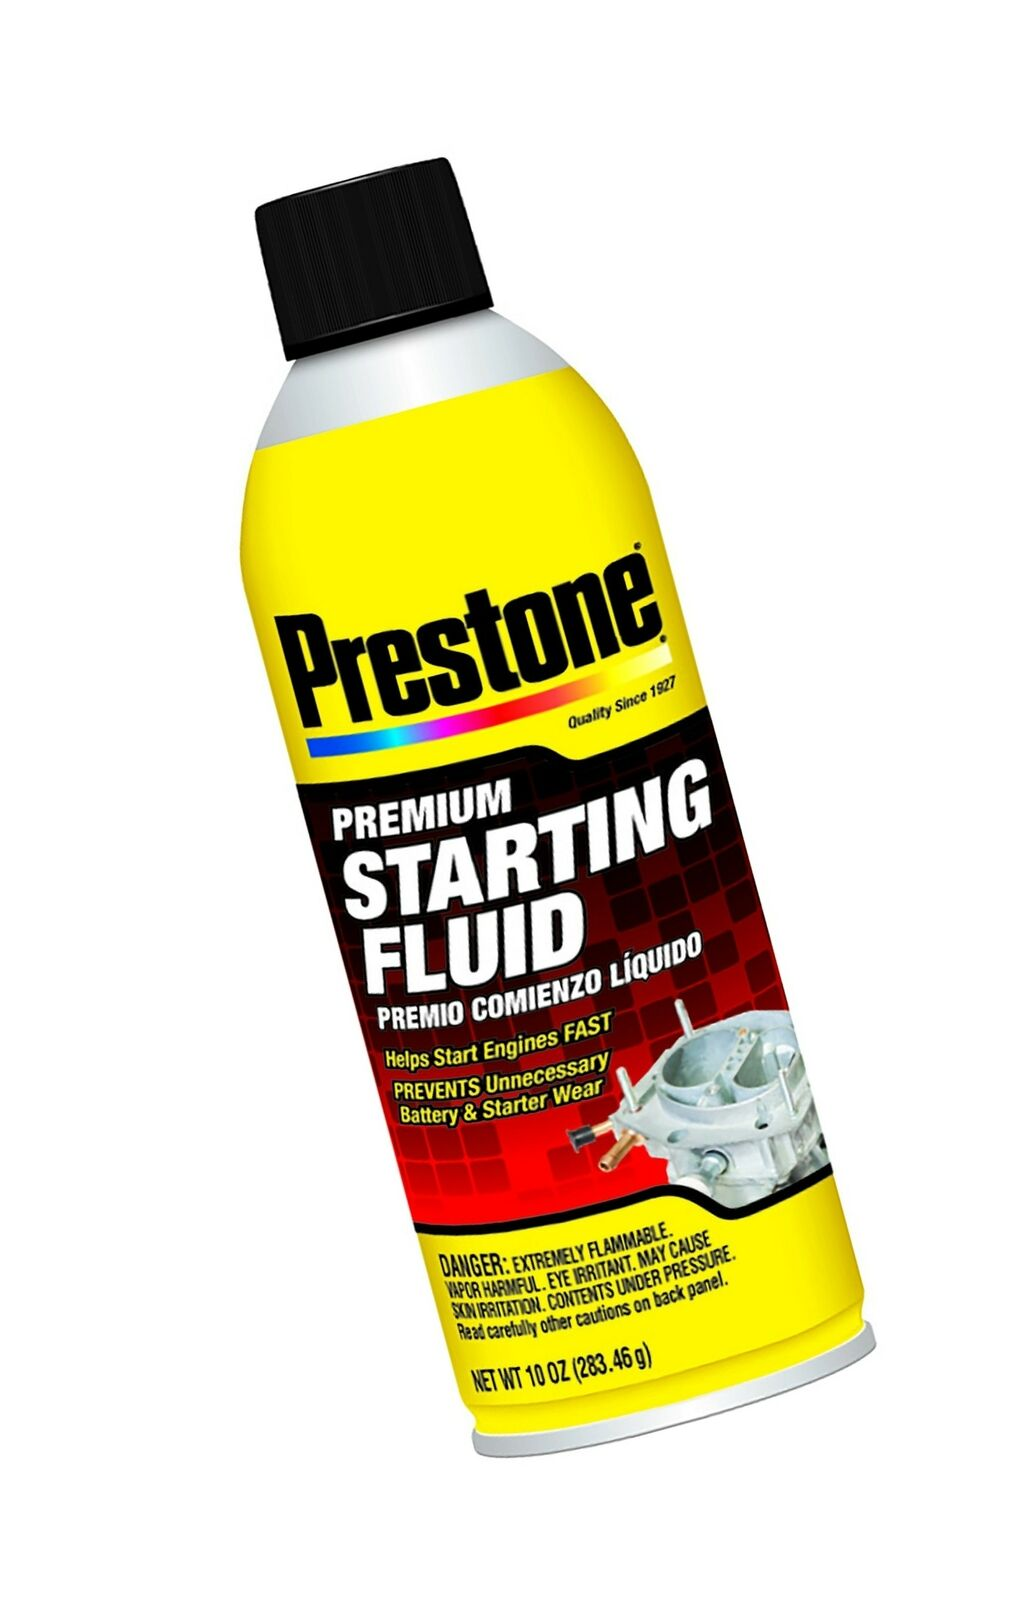 Prestone As237 Premium Starting Fluid - 10 Oz. Pack Of 1